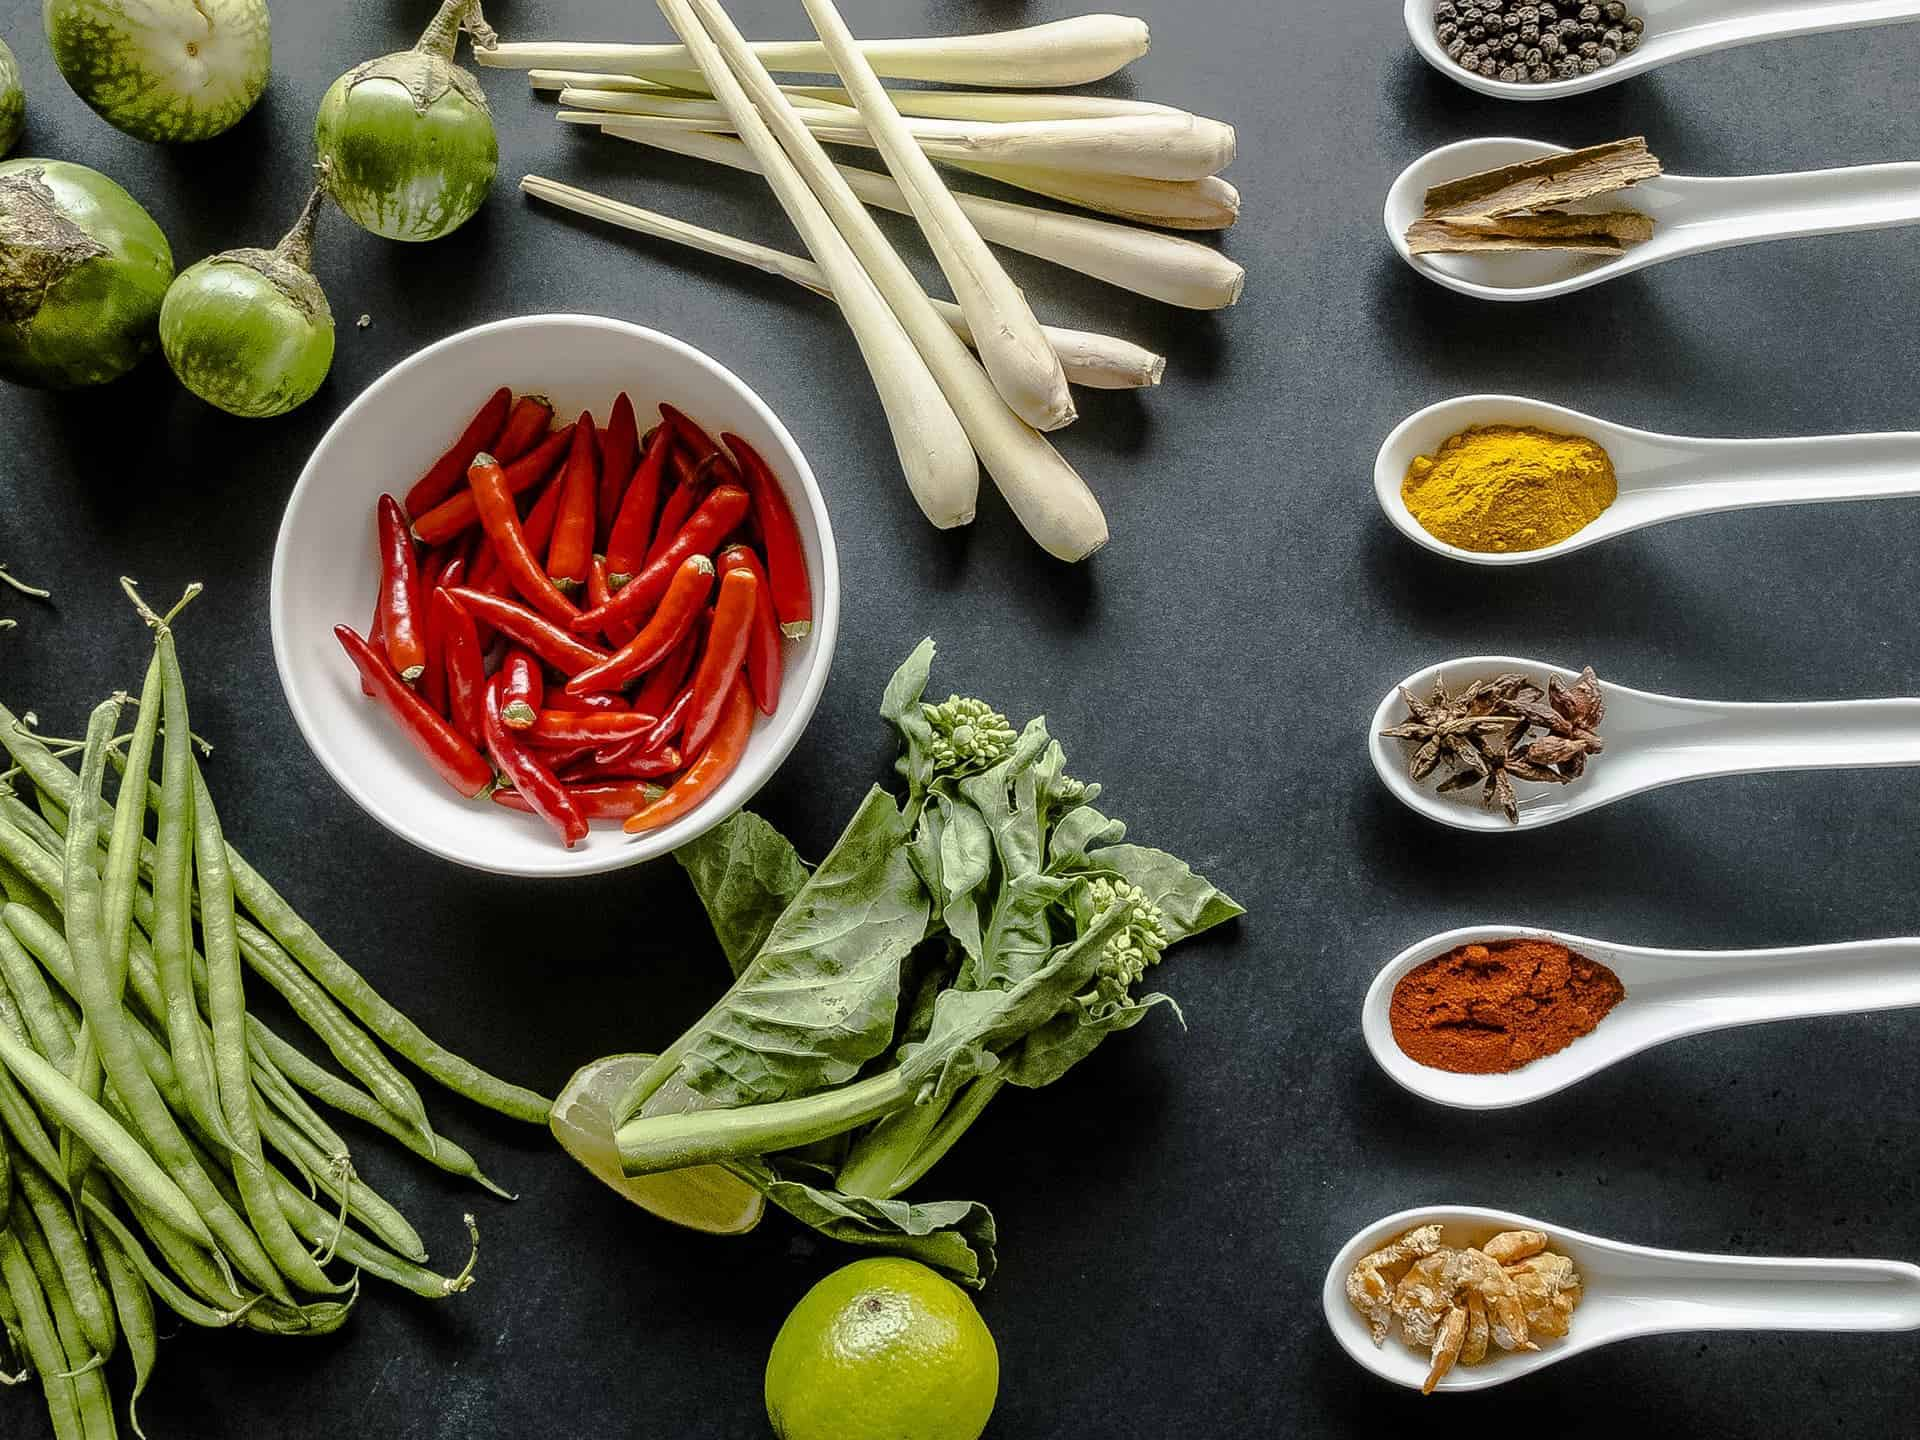 Nipa Thai ingredients